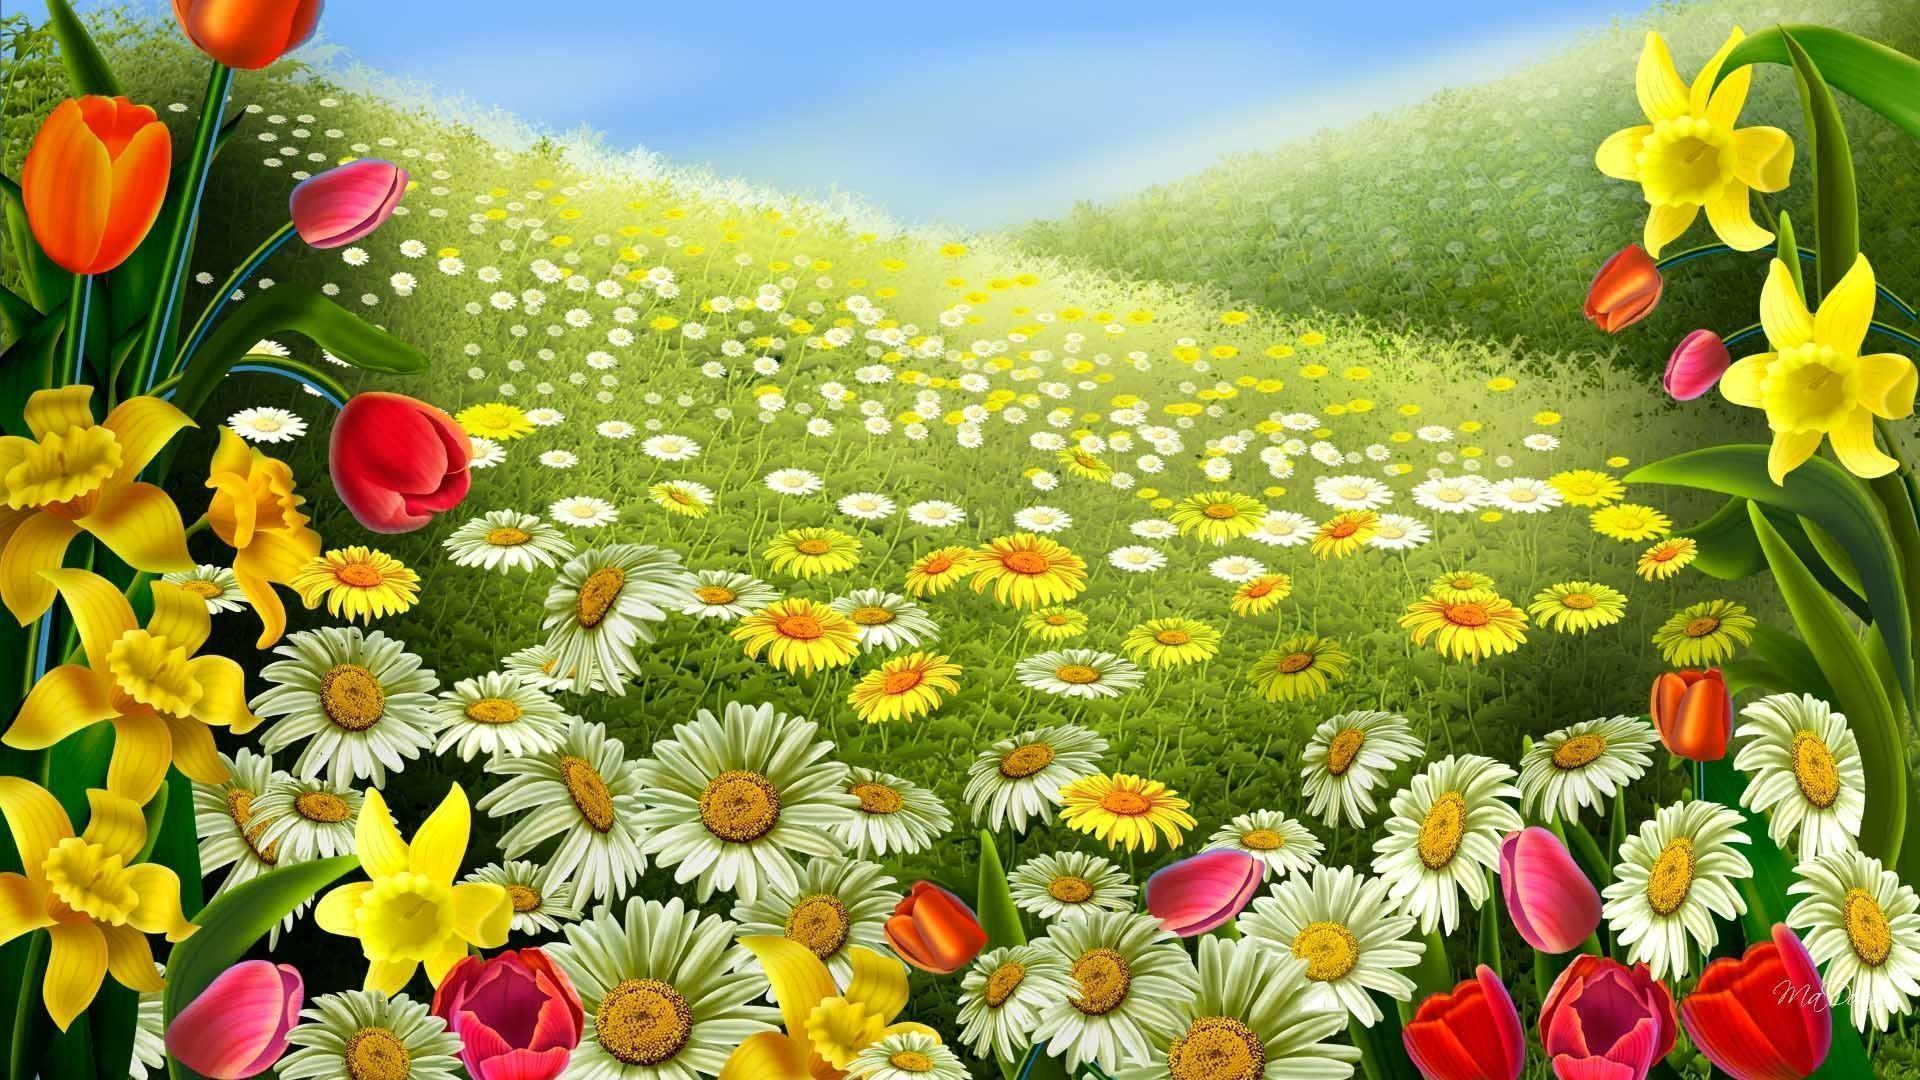 Desktop Backgrounds Hd Spring Wallpapers 1920x1080PX ~ Spring ...